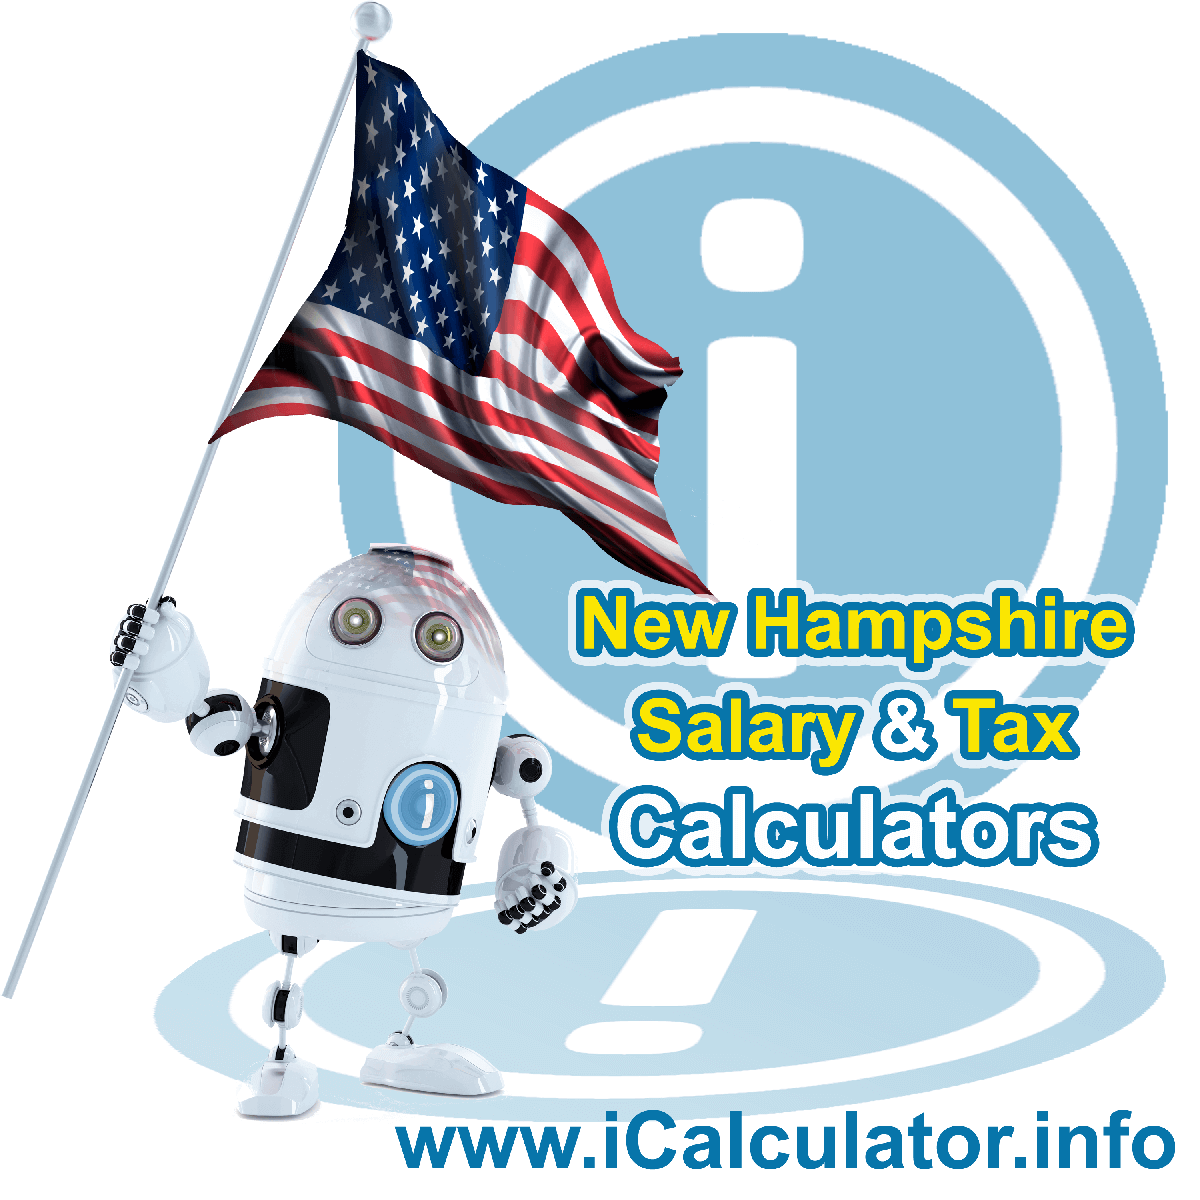 New Hampshire Salary Calculator 2019 | iCalculator | The New Hampshire Salary Calculator allows you to quickly calculate your salary after tax including New Hampshire State Tax, Federal State Tax, Medicare Deductions, Social Security, Capital Gains and other income tax and salary deductions complete with supporting New Hampshire state tax tables